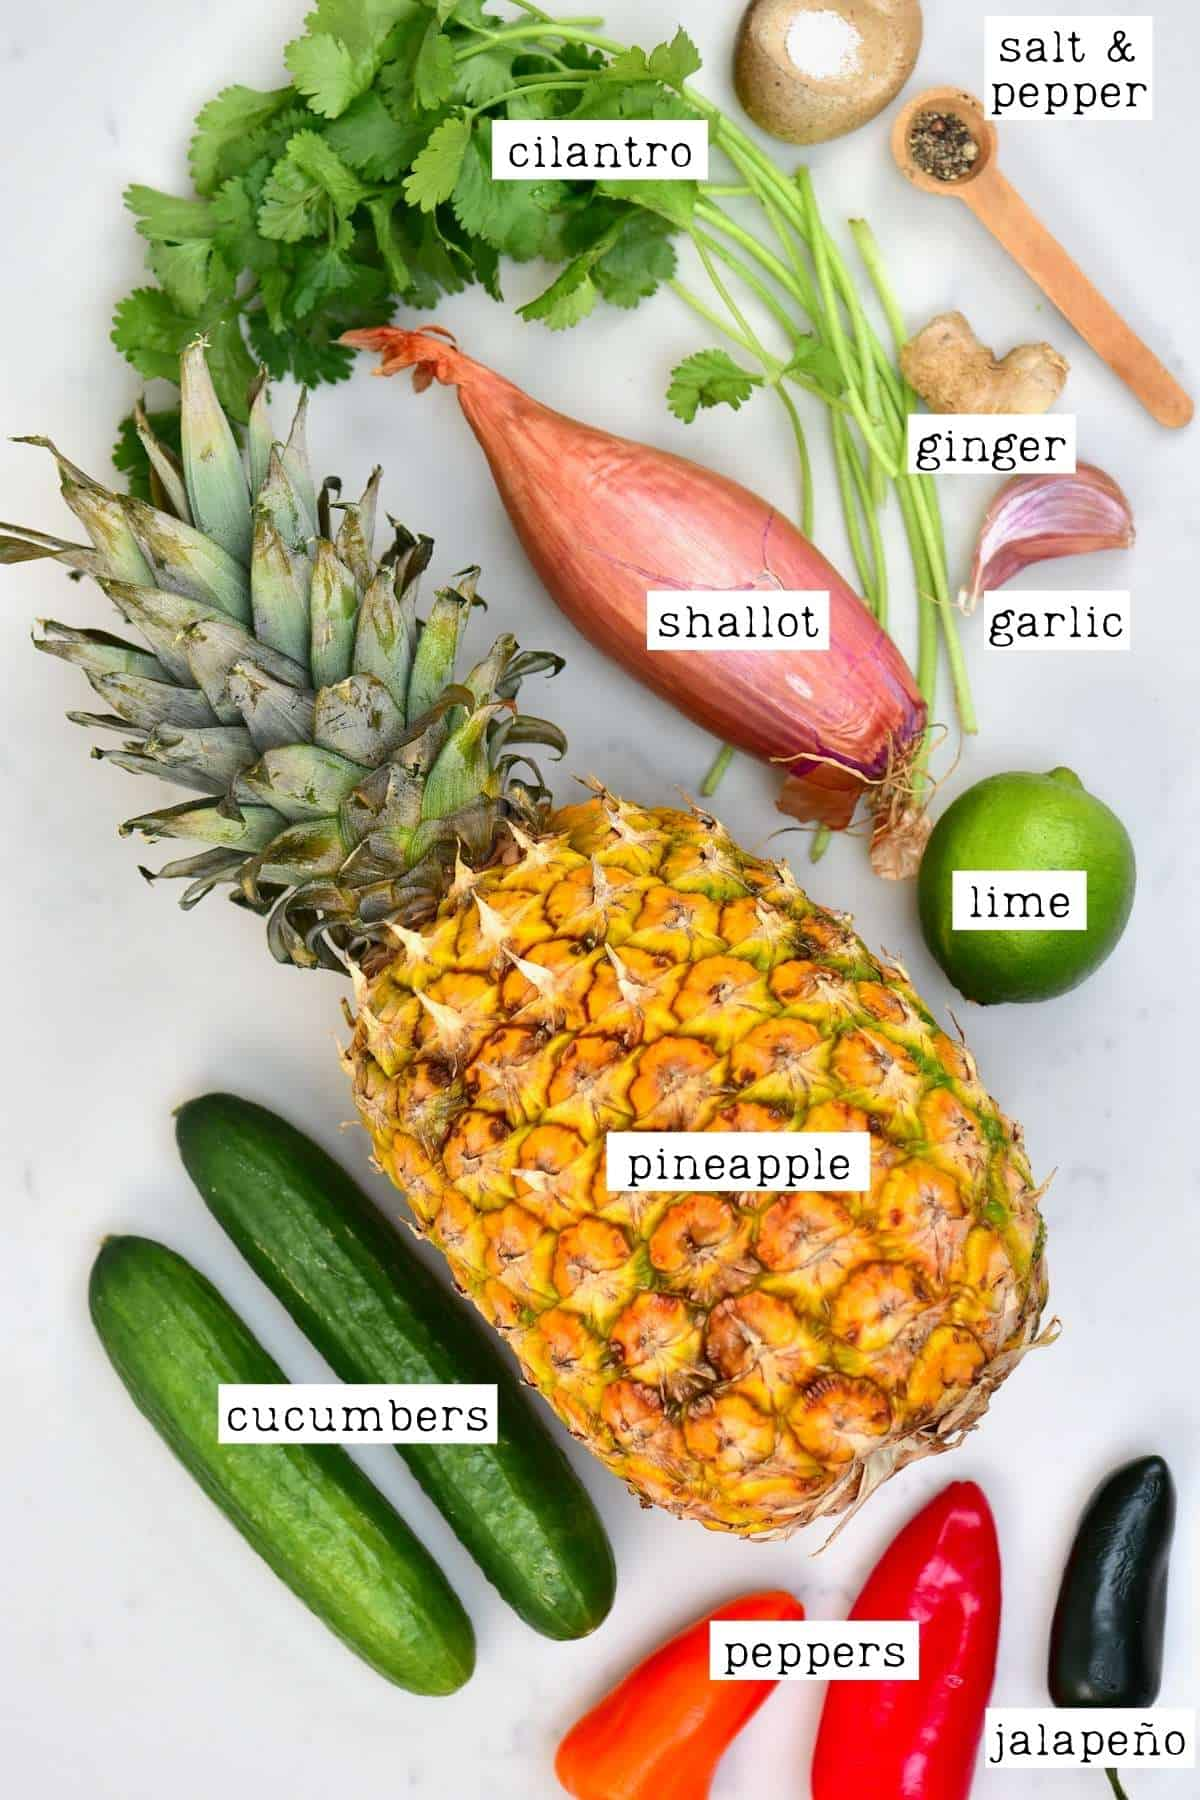 Ingredients for pineapple salad